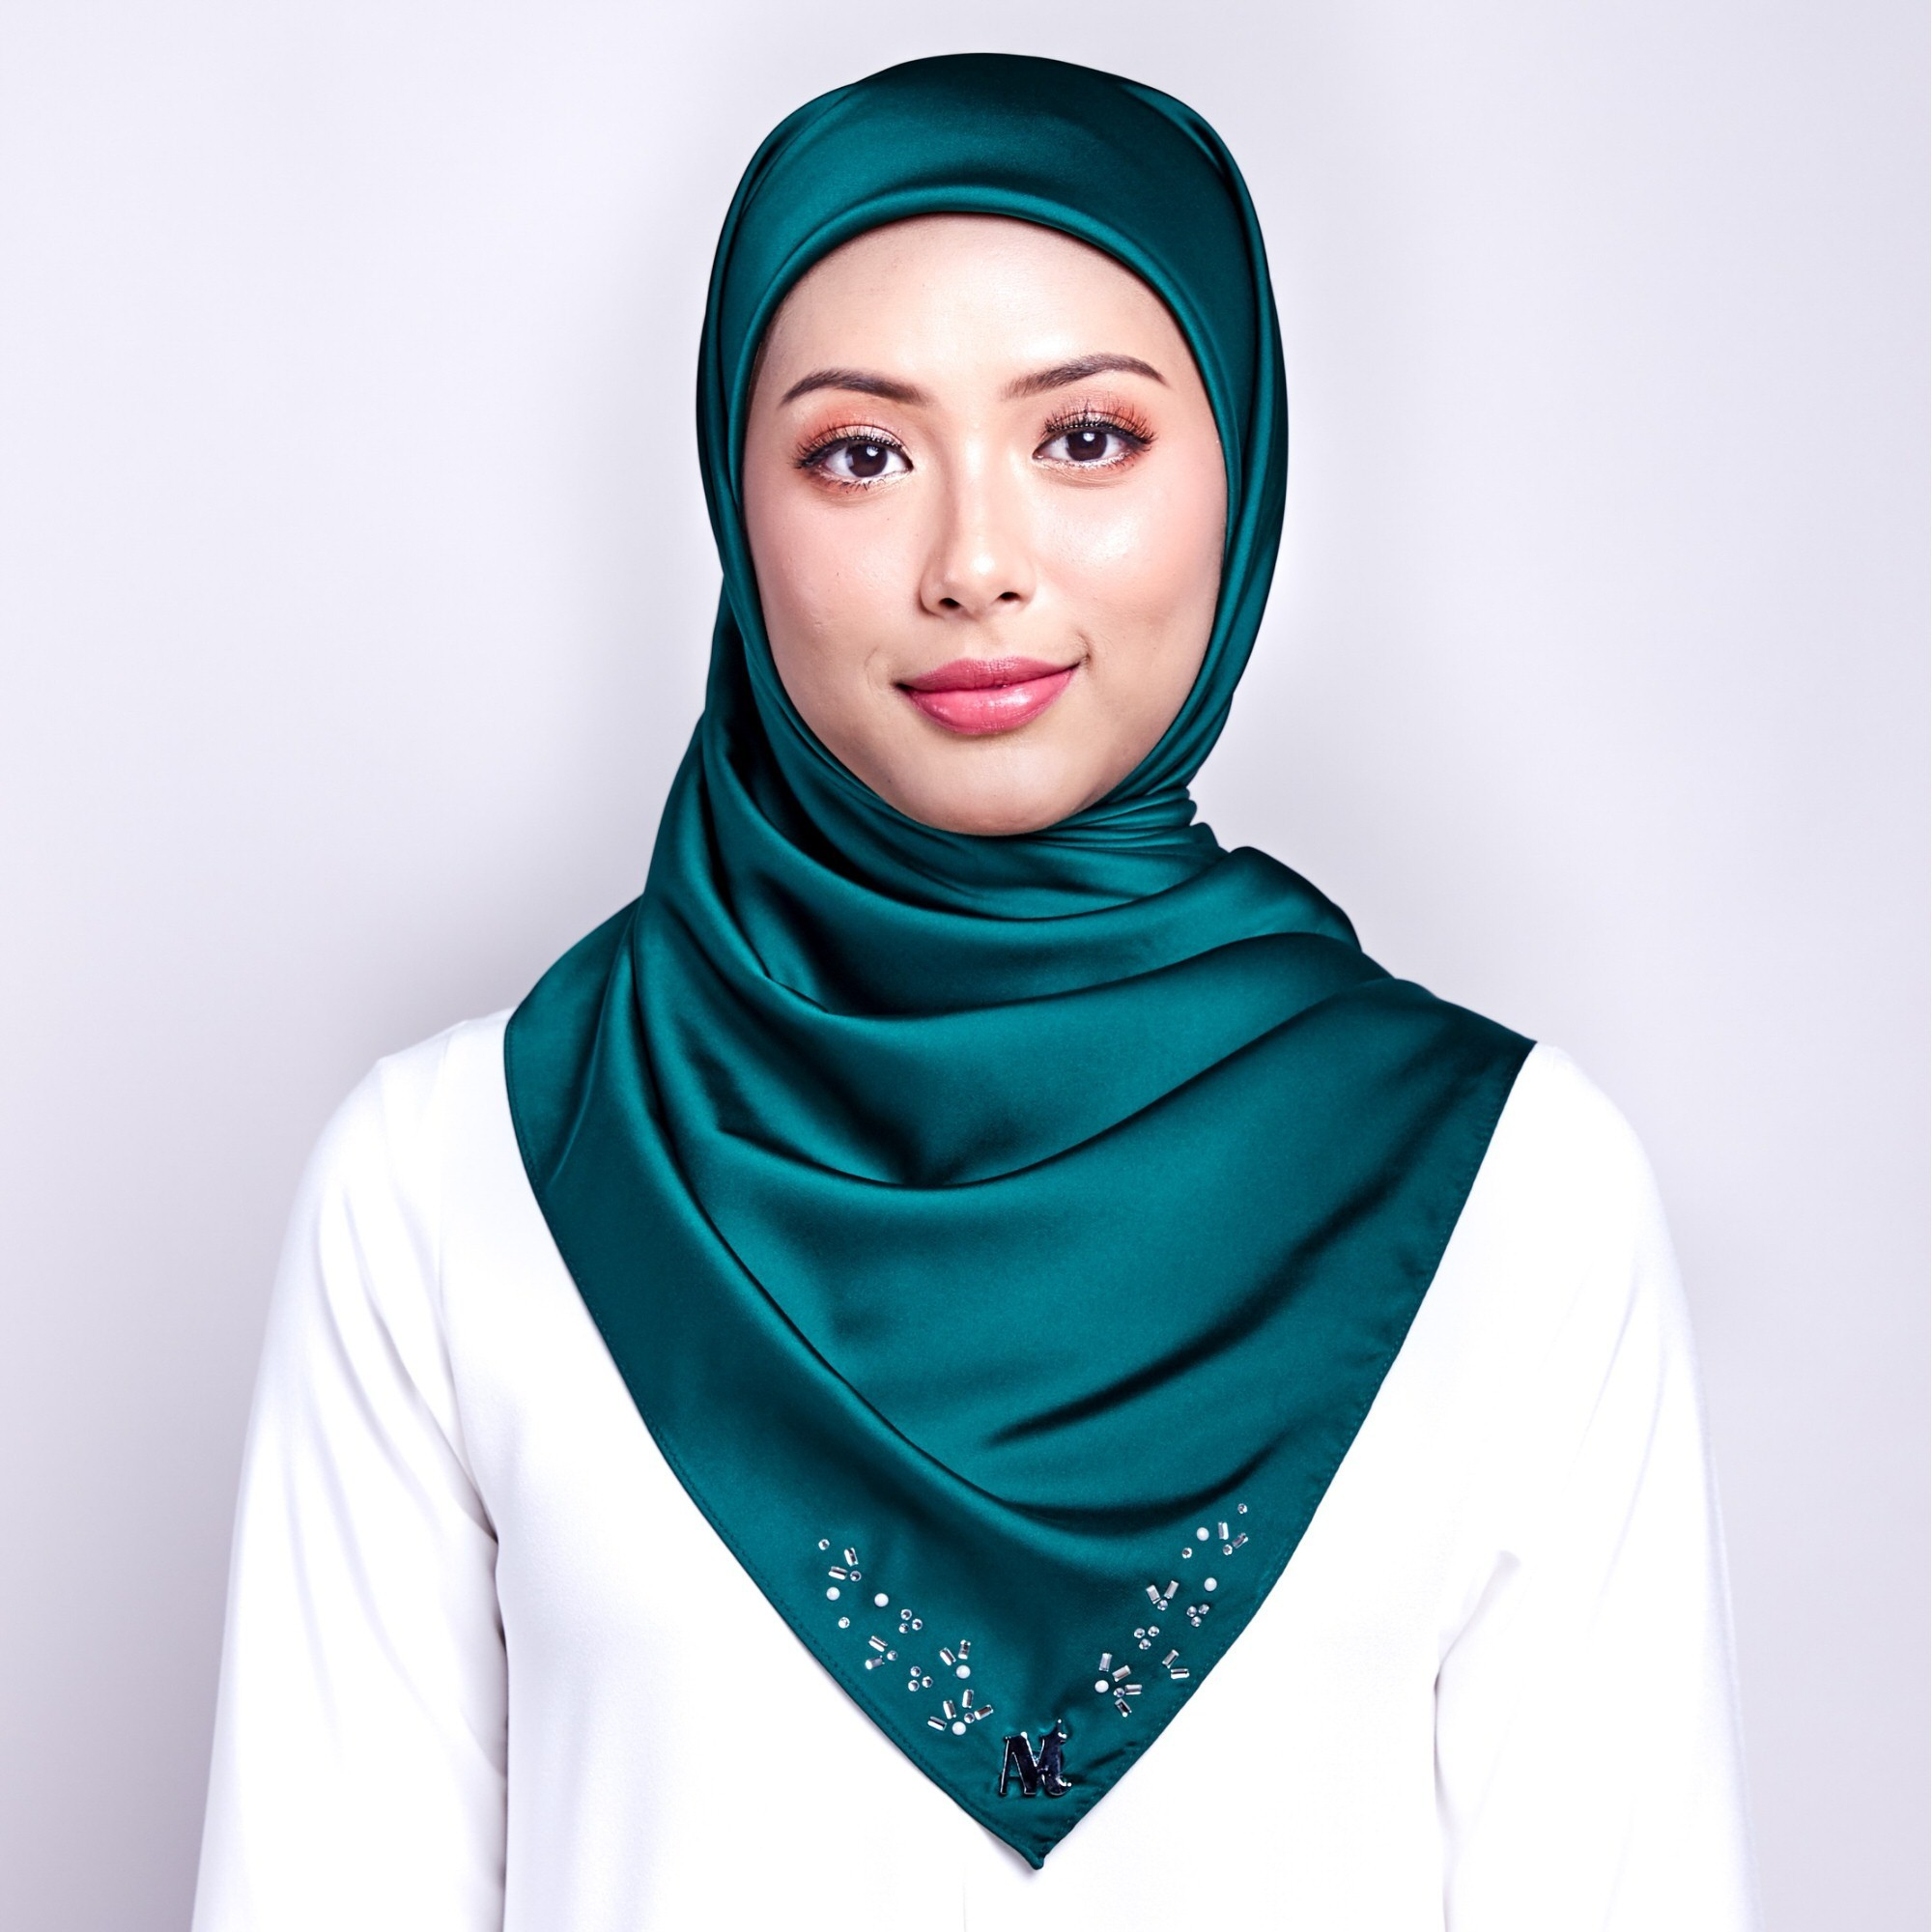 Tudung Kayla Satin Square in Emerald Green - 1 Mataa Hijab